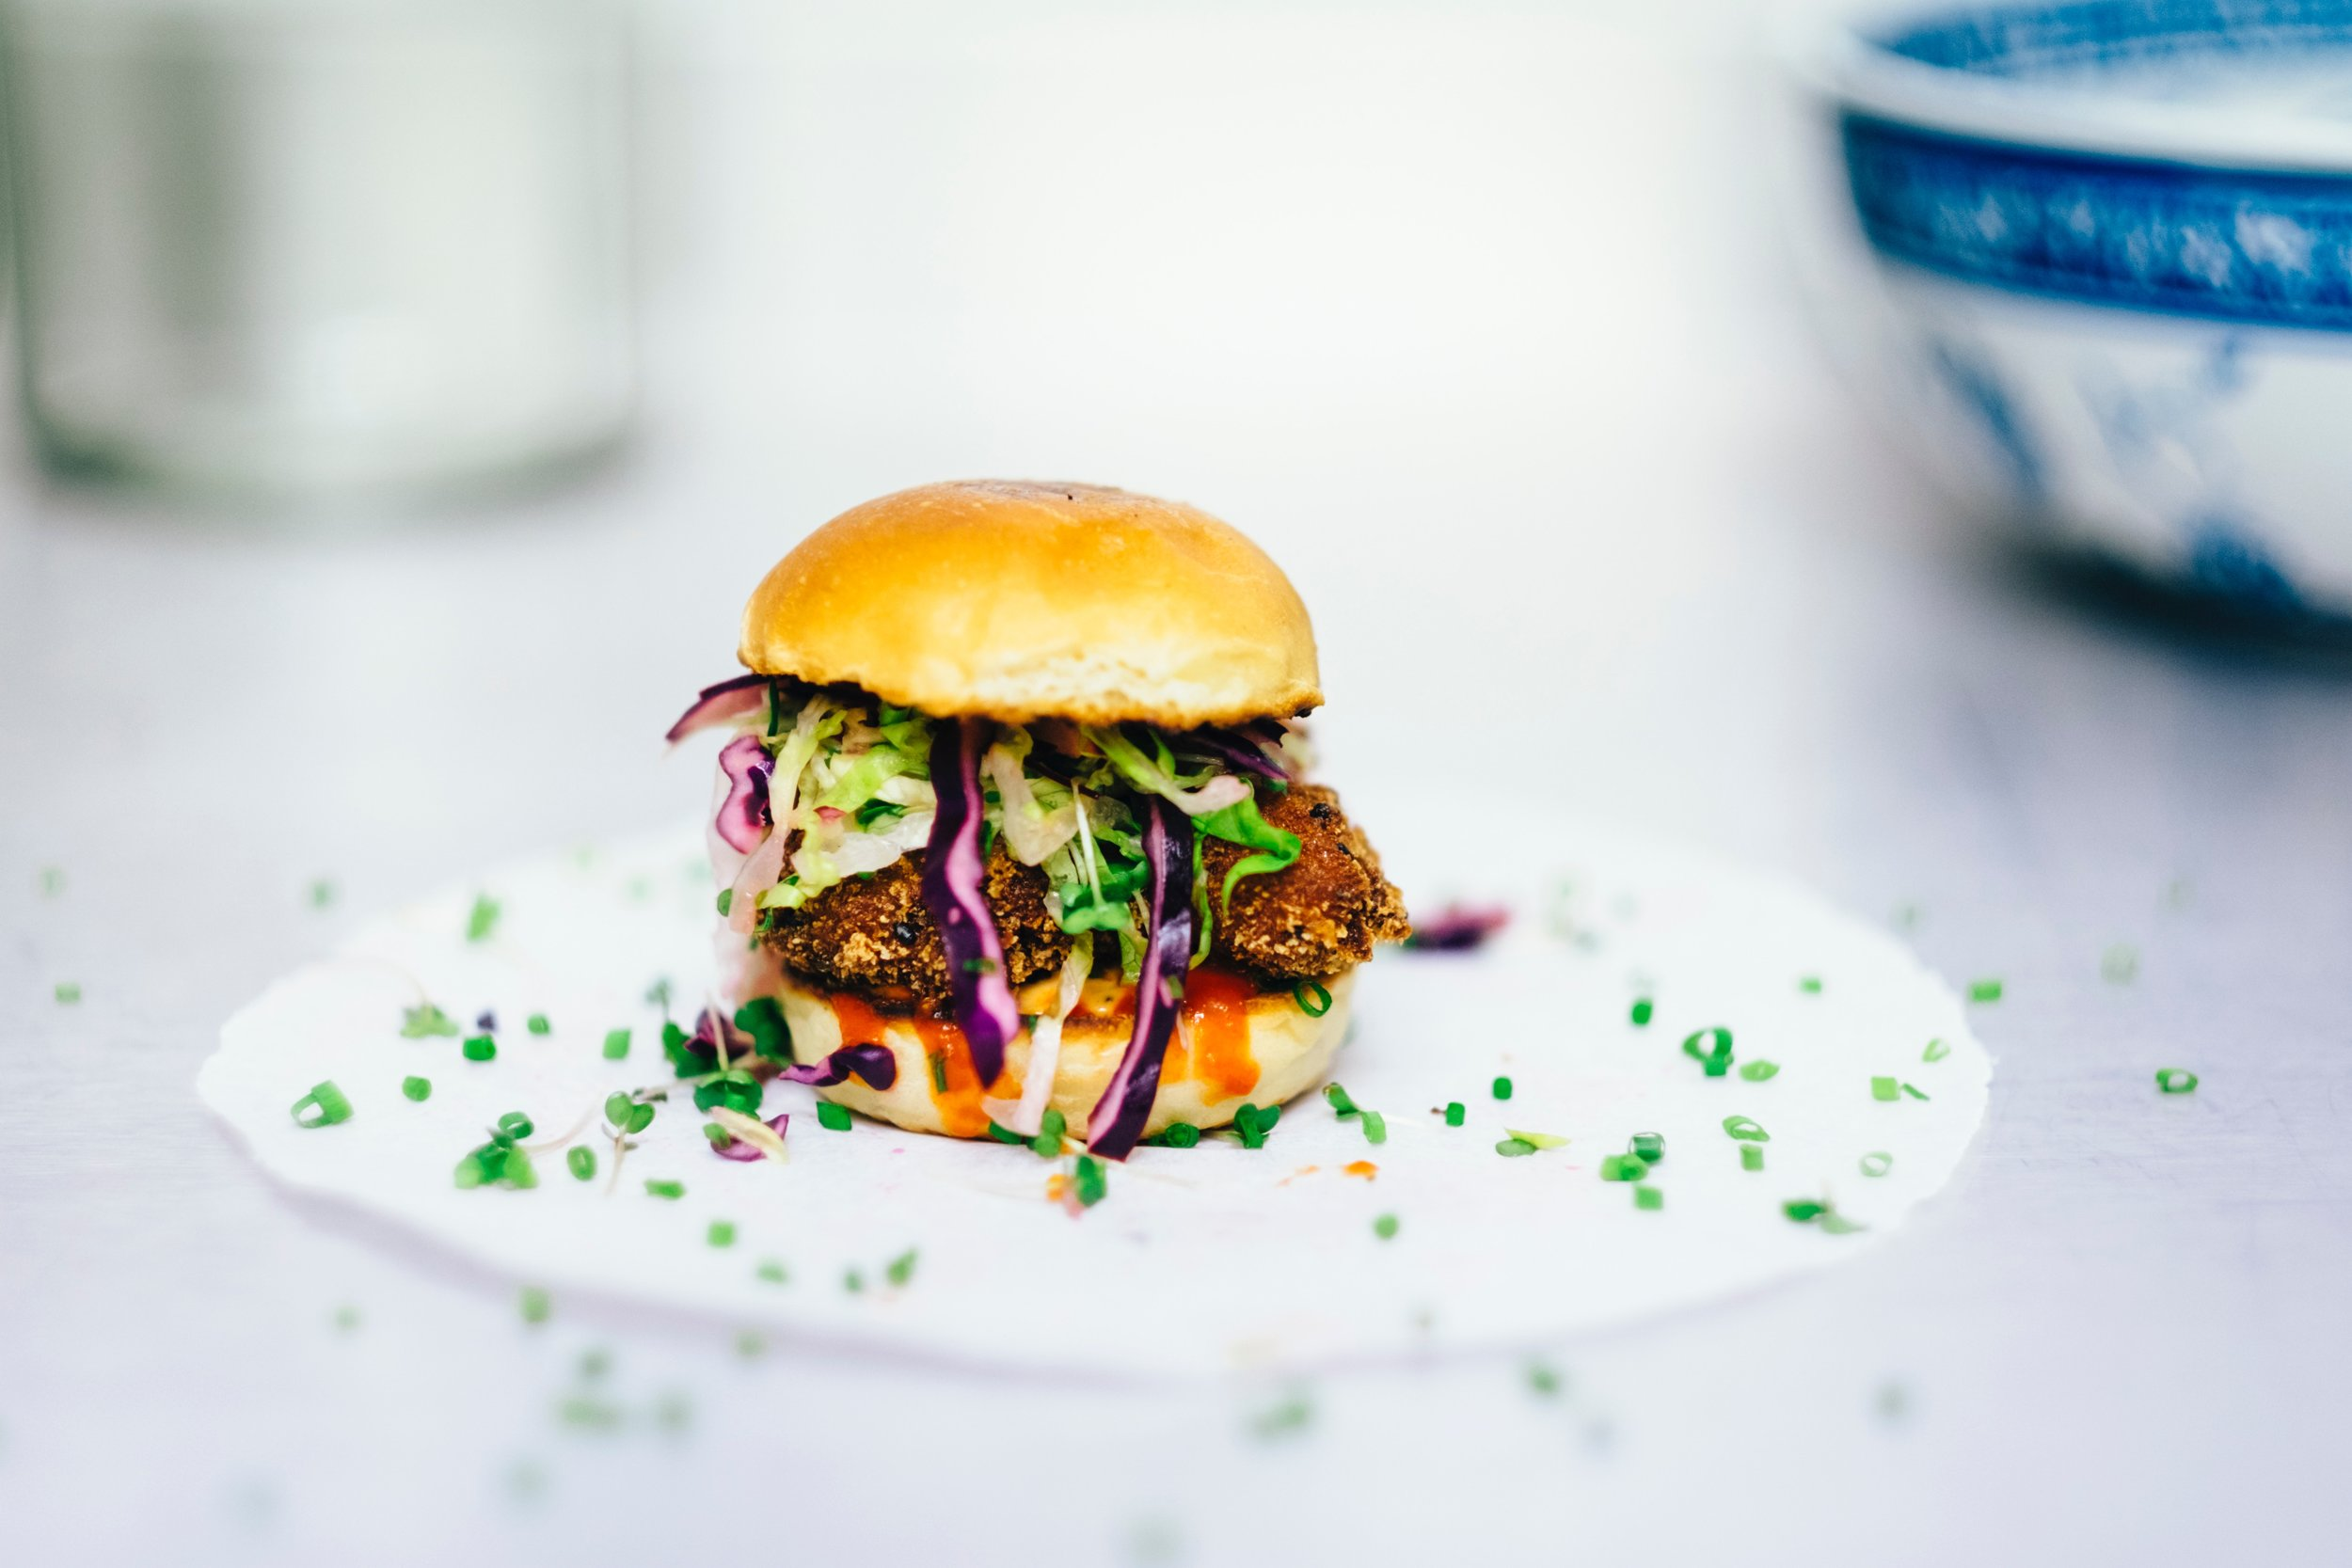 There are more options than ever for people hoping to eat more sustainably. While we await clean meat, the Culinary Institute of America recommends meat reduction strategies, such as  blending mushrooms  with ground beef for burgers. Photo credit: Unsplash.